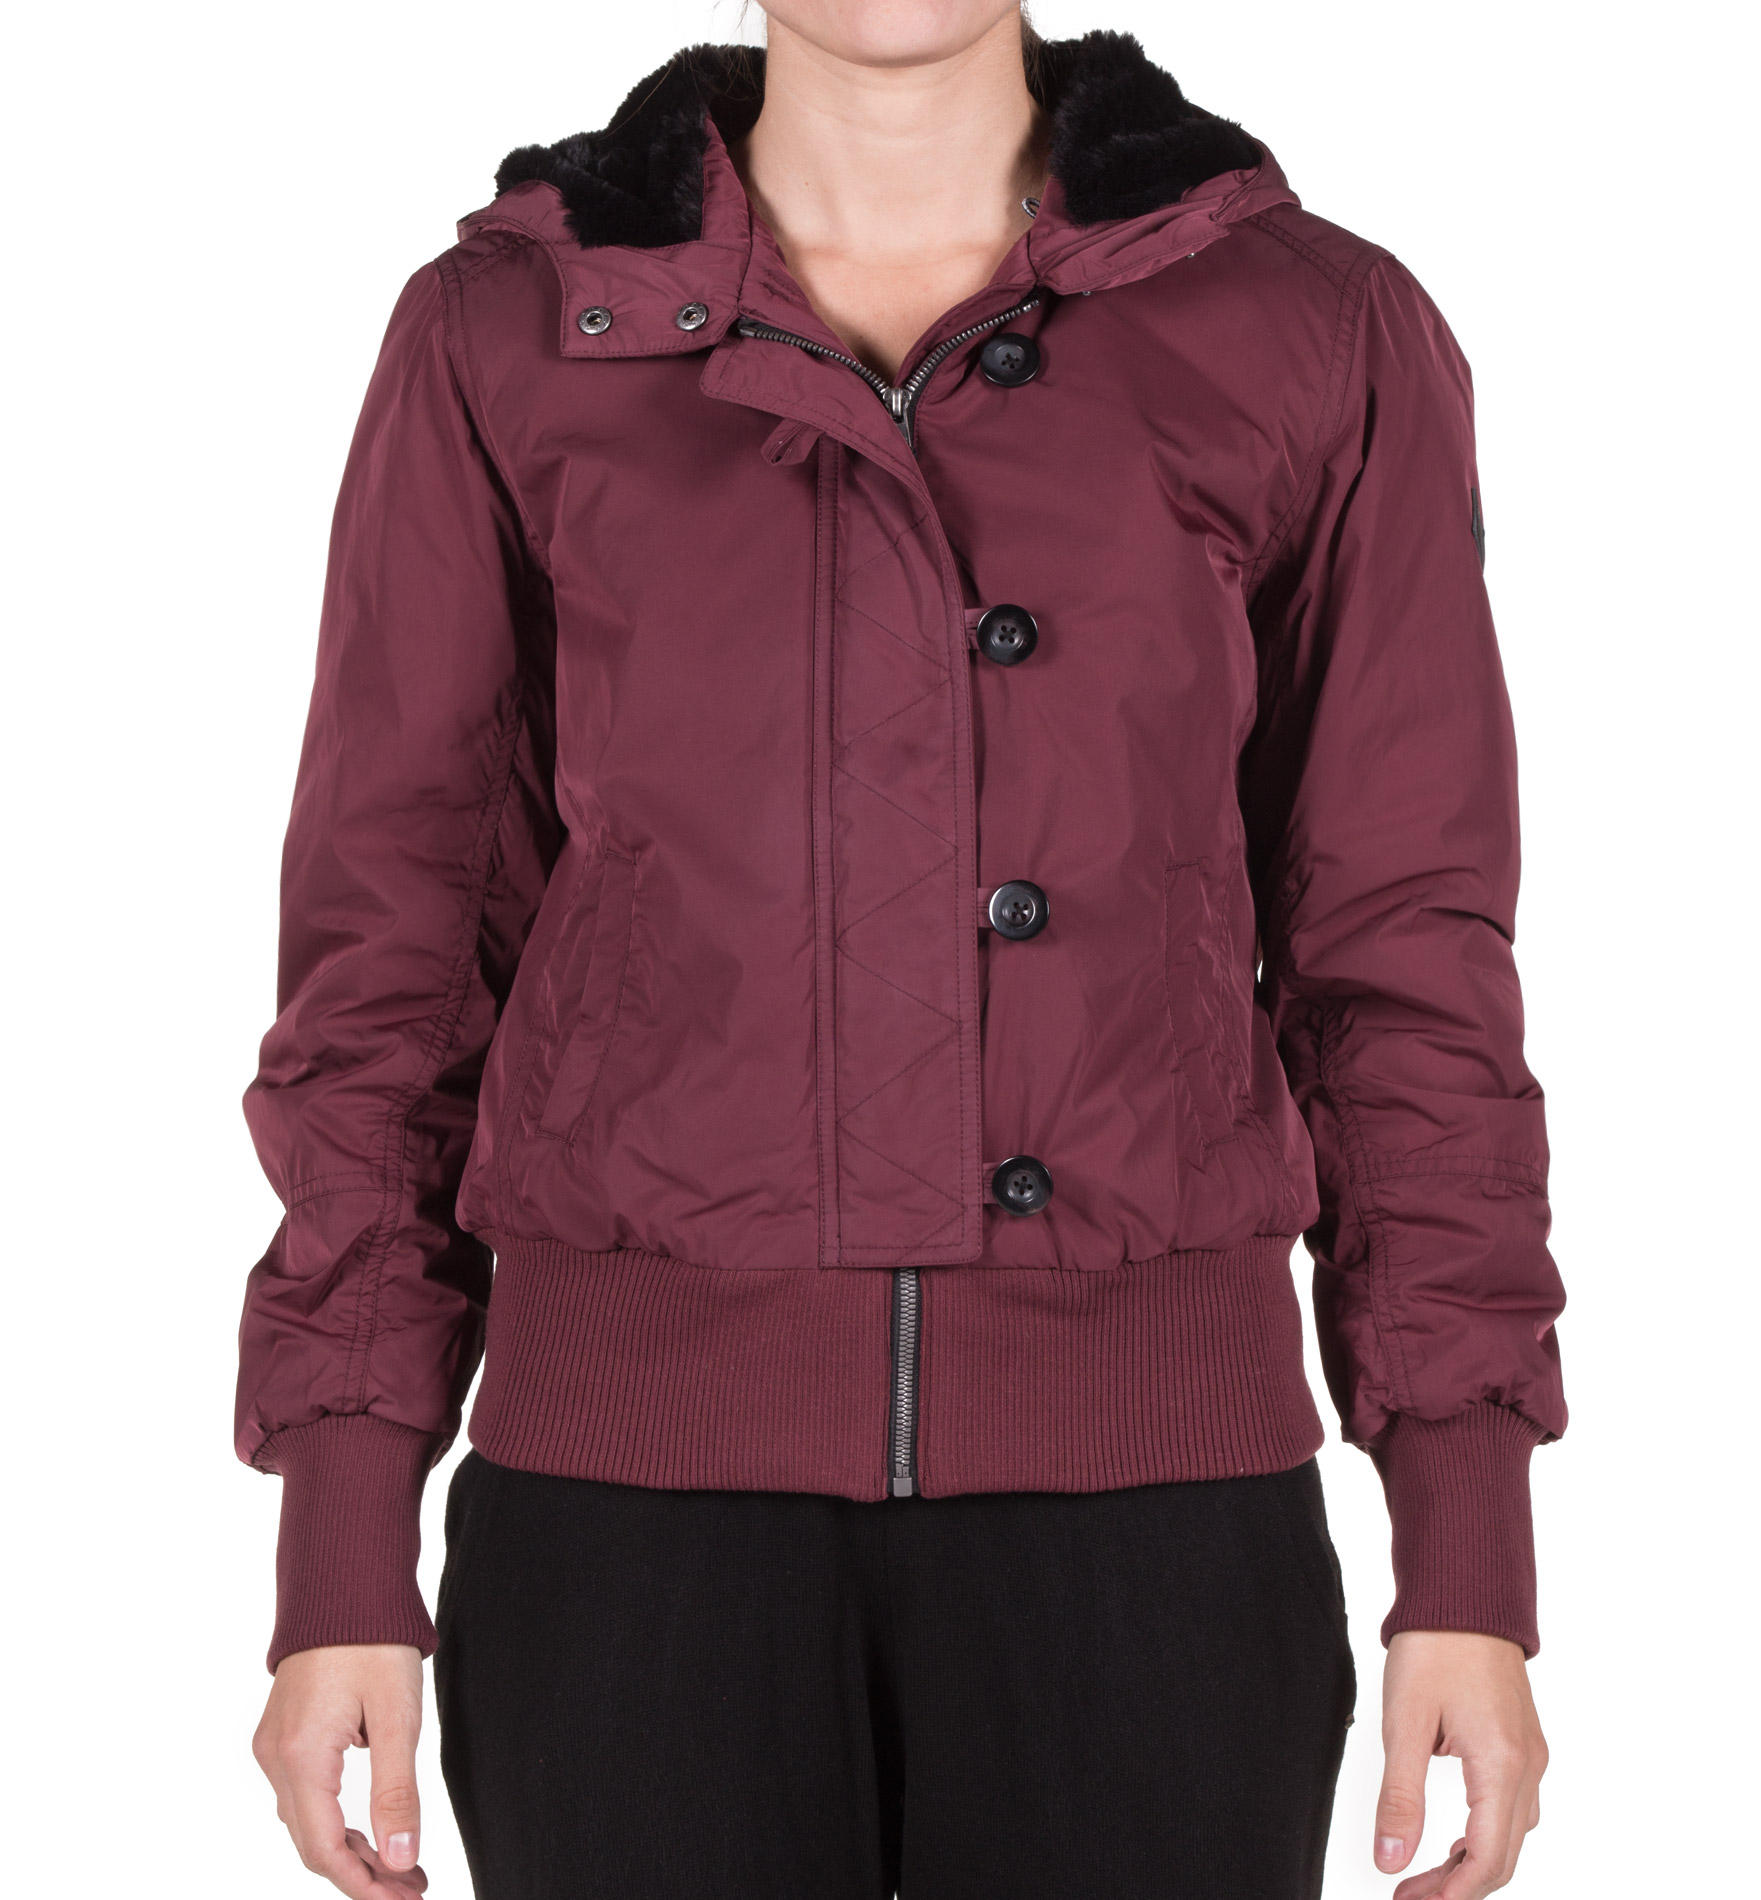 O'NEILL AW RIDGE HIKER JACKET 7P6004-3117 Μπορντό